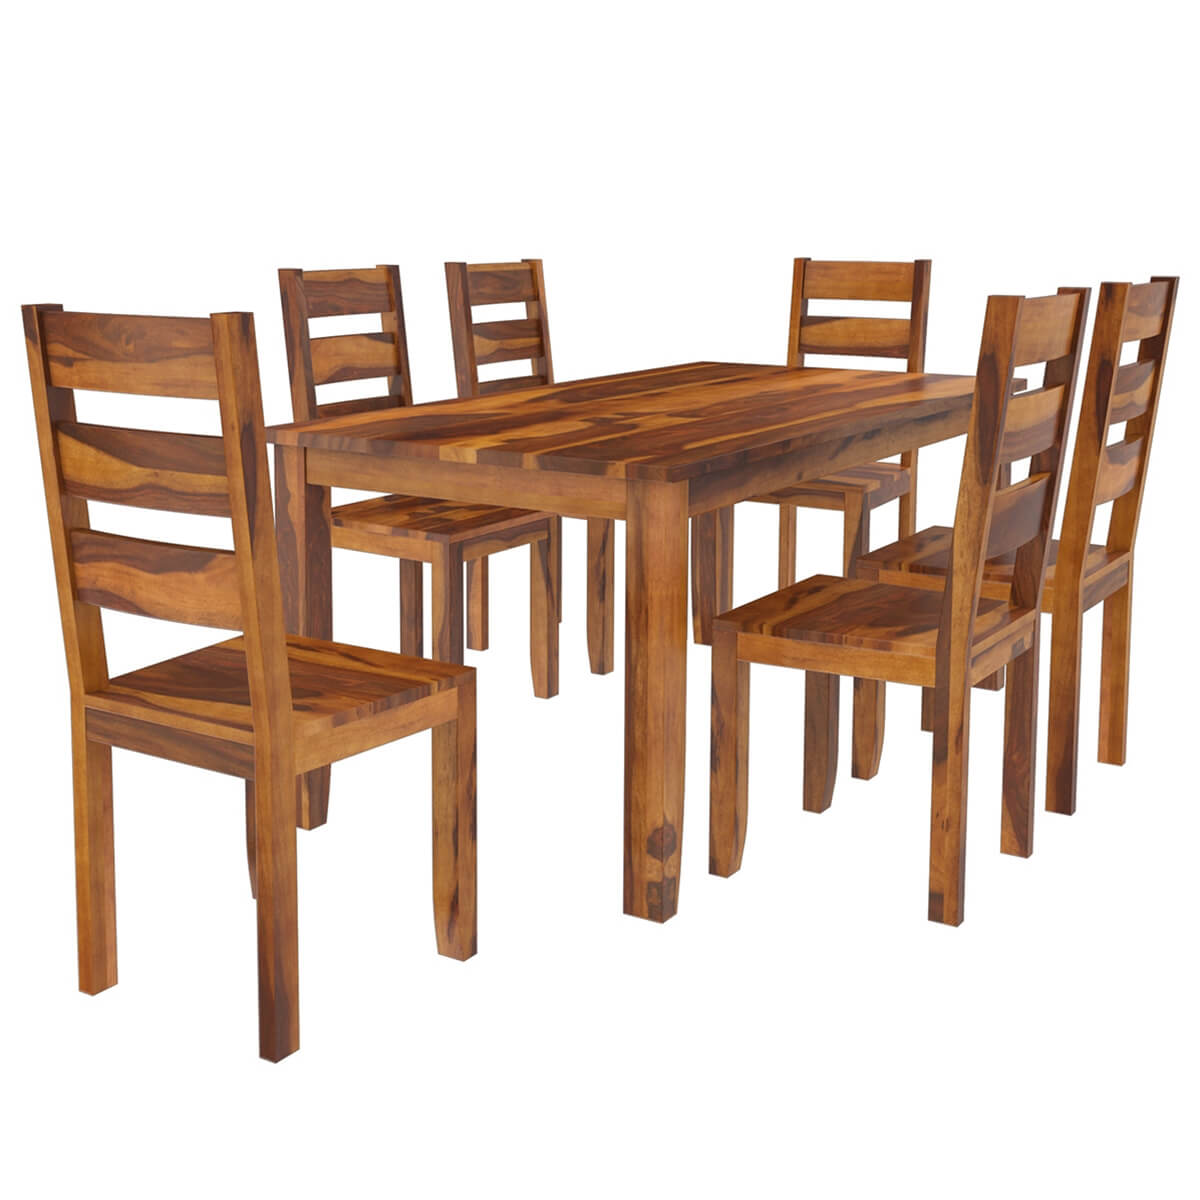 Idaho Modern Rustic Solid Wood Dining Table Chair Set: Cariboo Contemporary Rustic Solid Wood Dining Table And